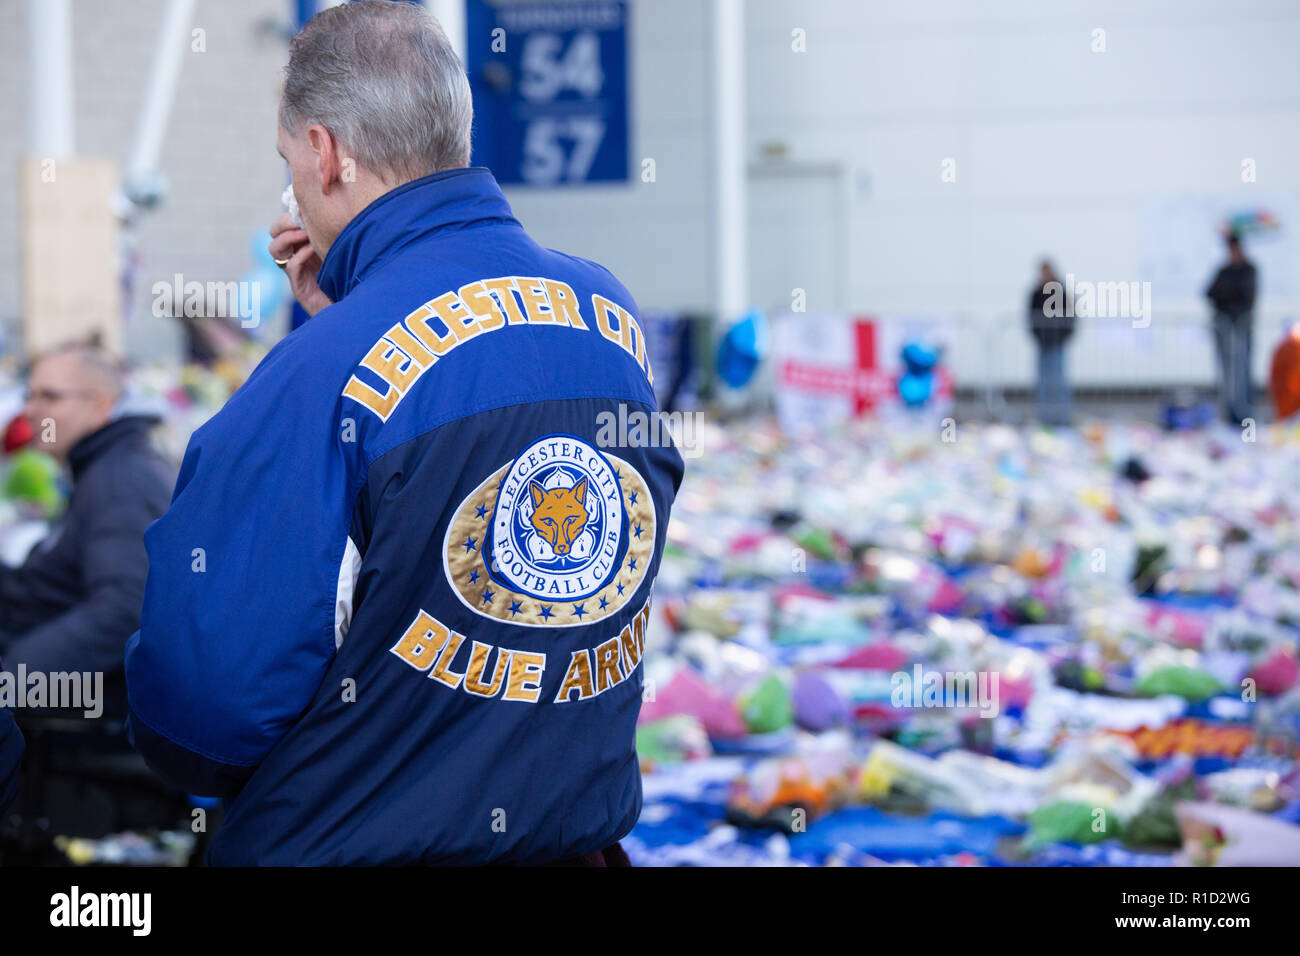 Leicester City Football fans paying their respects outside the stadium after the death of owner Vichai Srivaddhanaprabha in a helicopter crash. Stock Photo